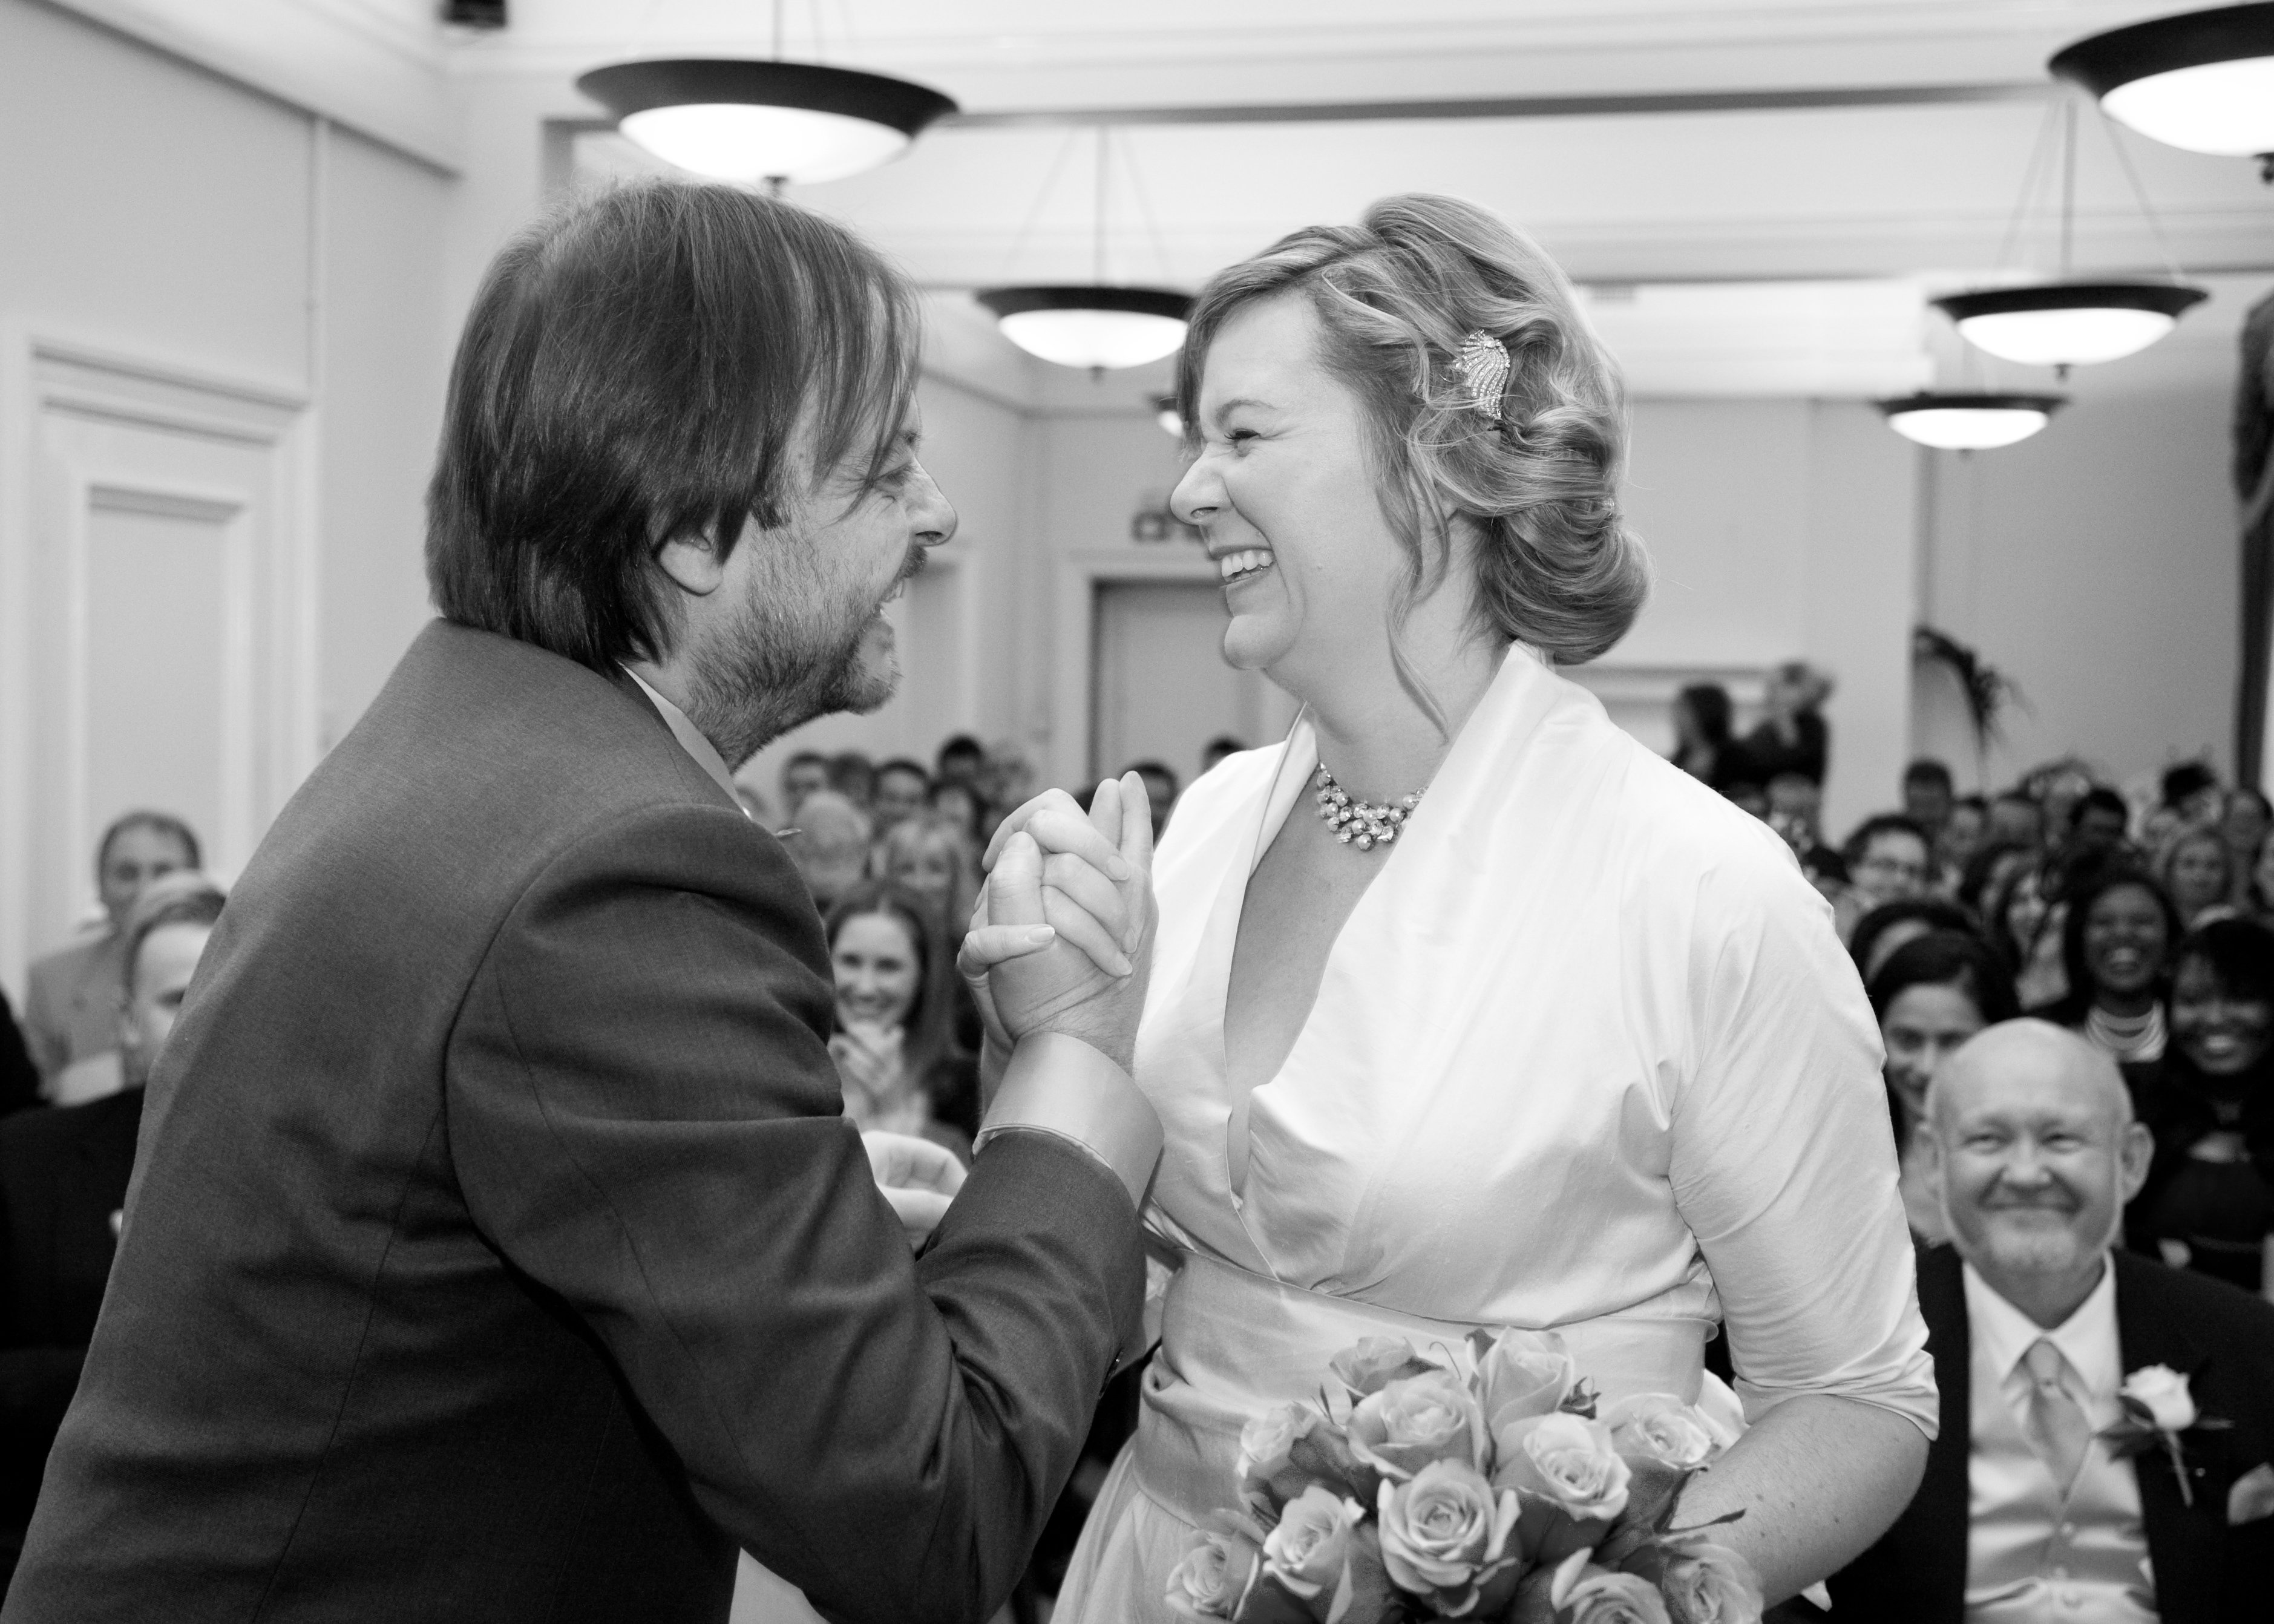 Bride and groom smiling at each other during a registry office wedding